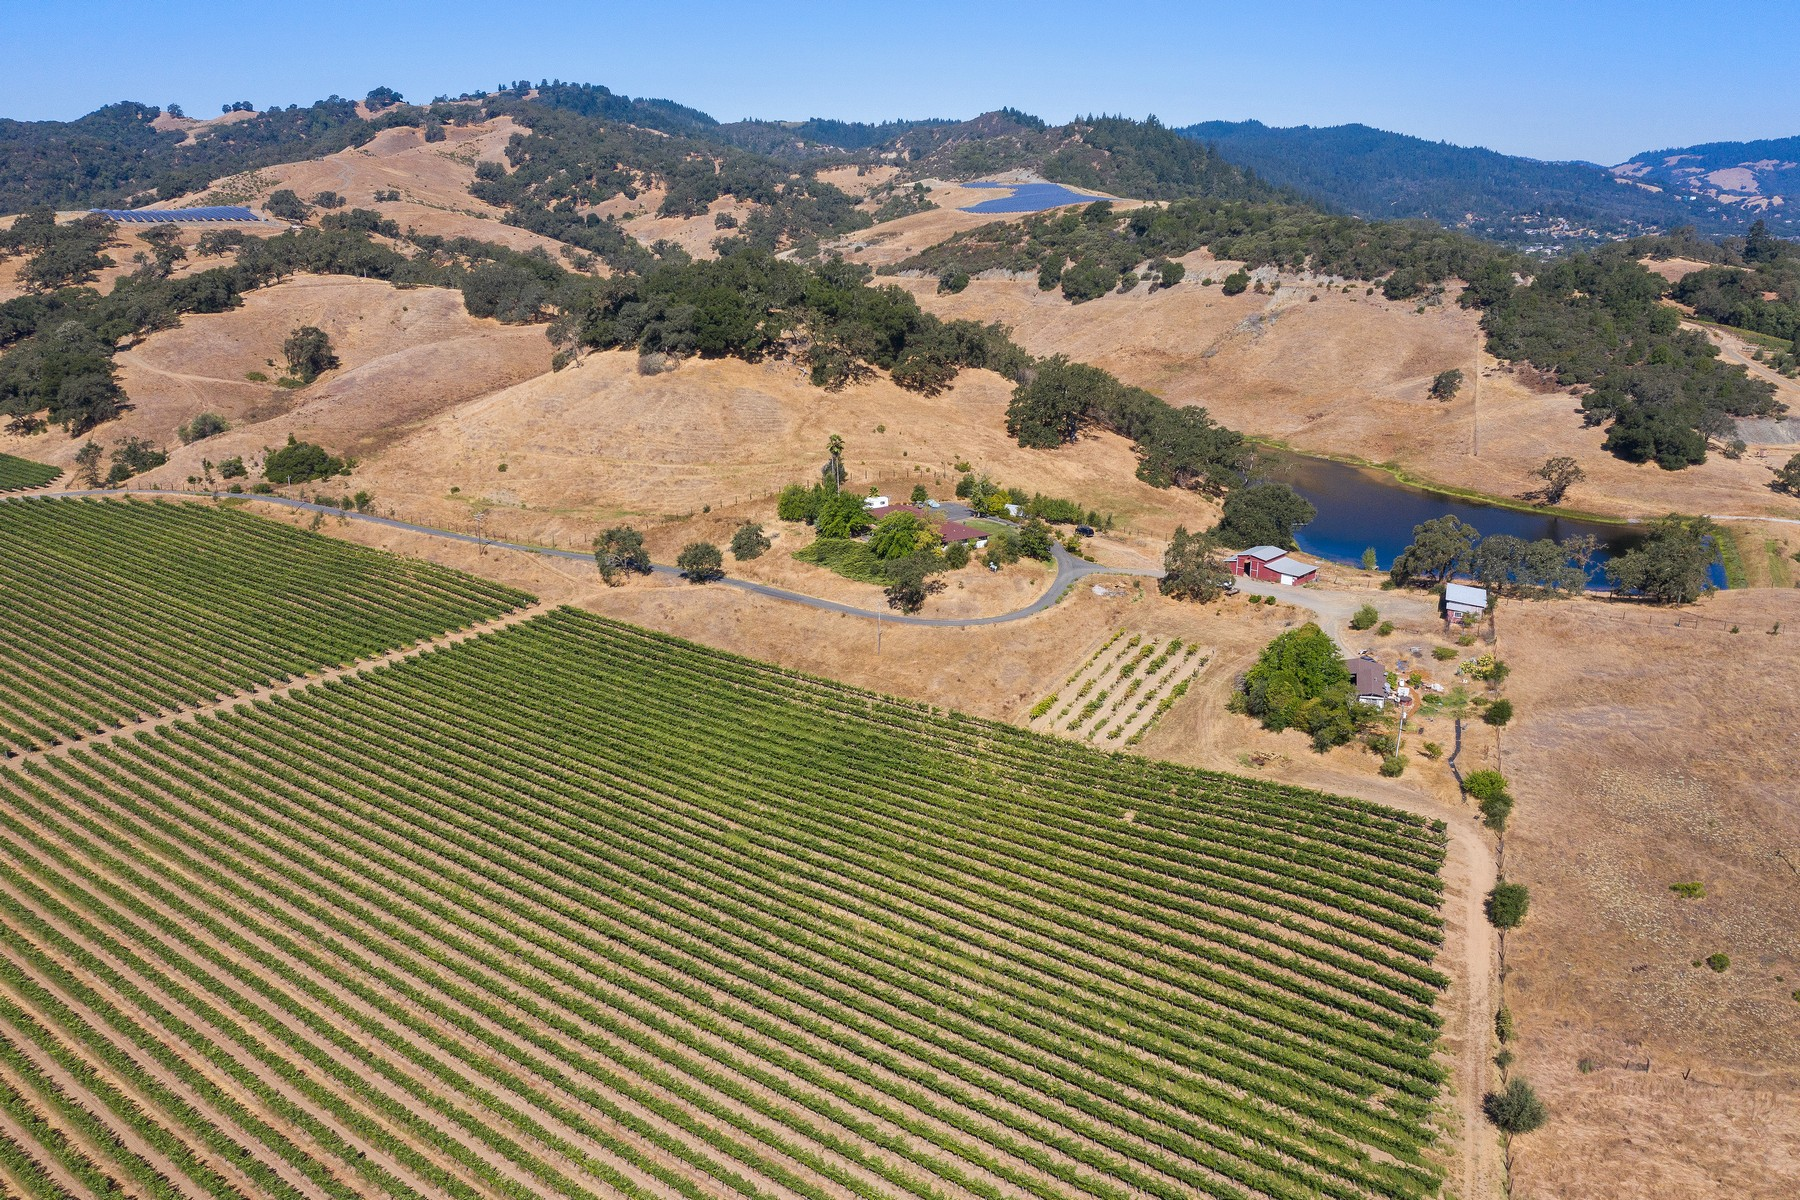 Vineyard Real Estate for Sale at Lakeview Wine Ranch 900 Hiatt Road Cloverdale, California 95425 United States